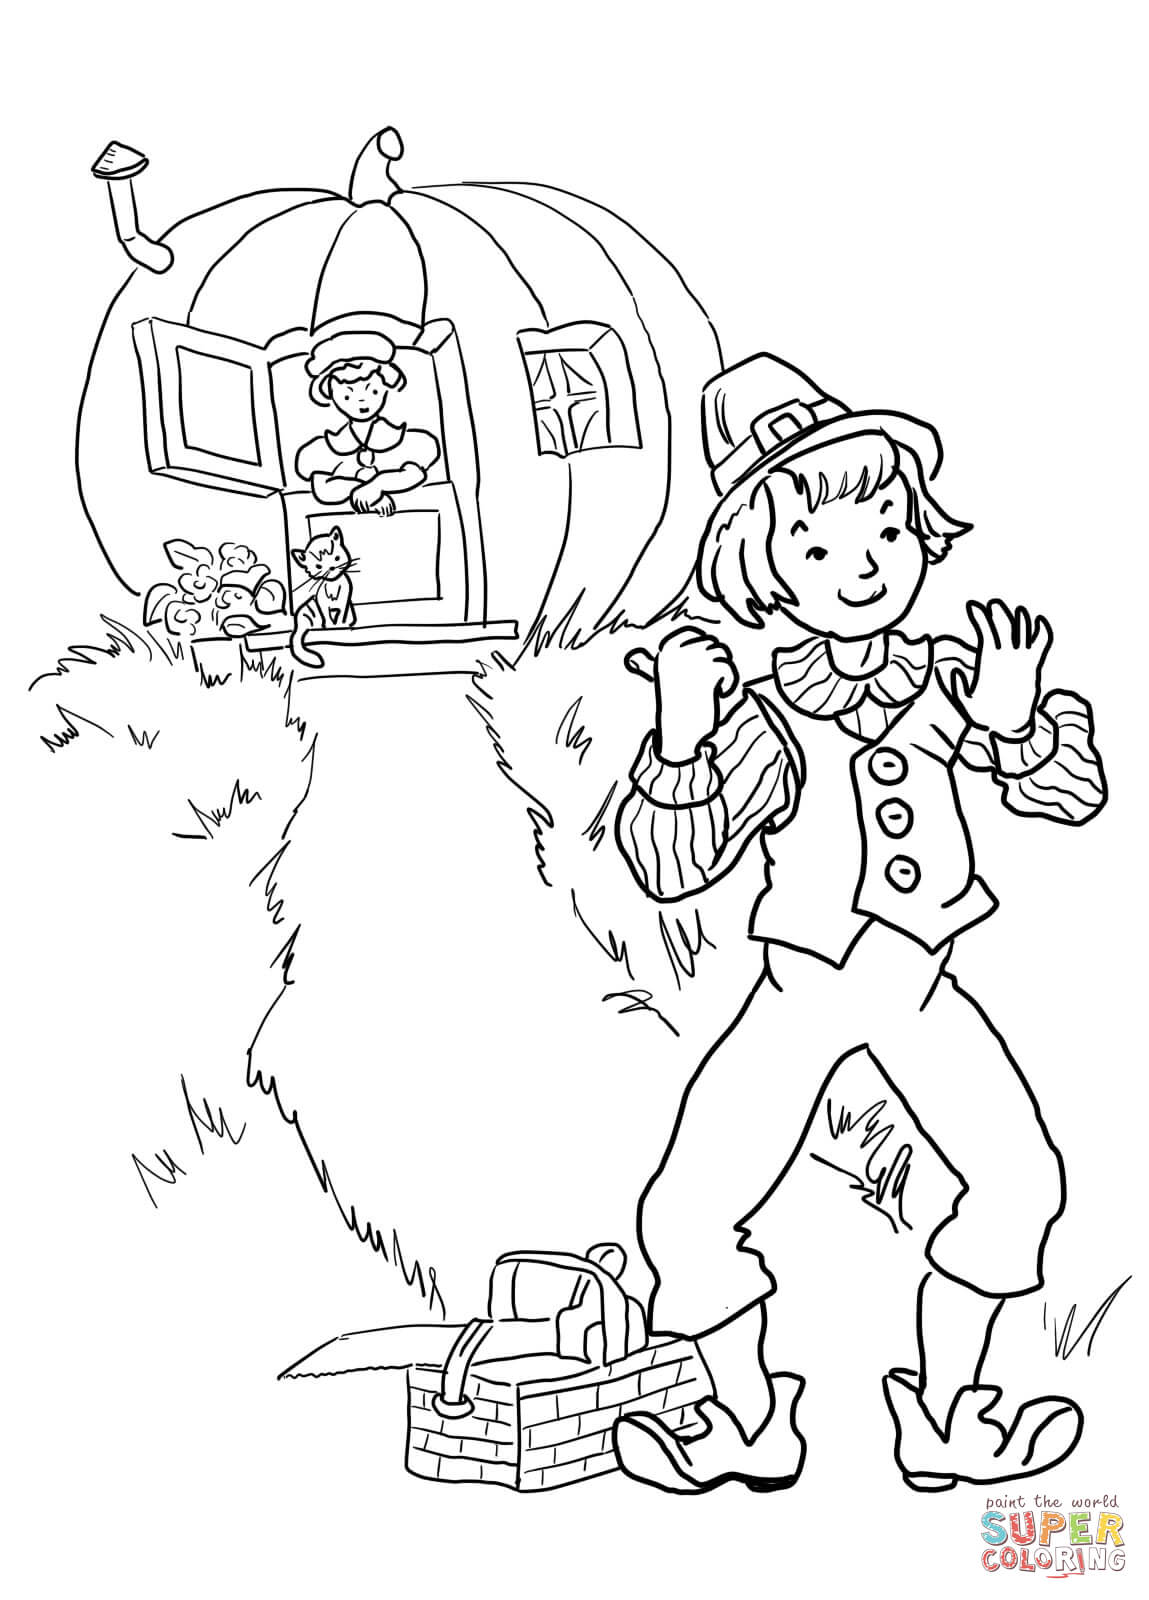 Nursery Rhyme Rain Go Away Sketch Coloring Page